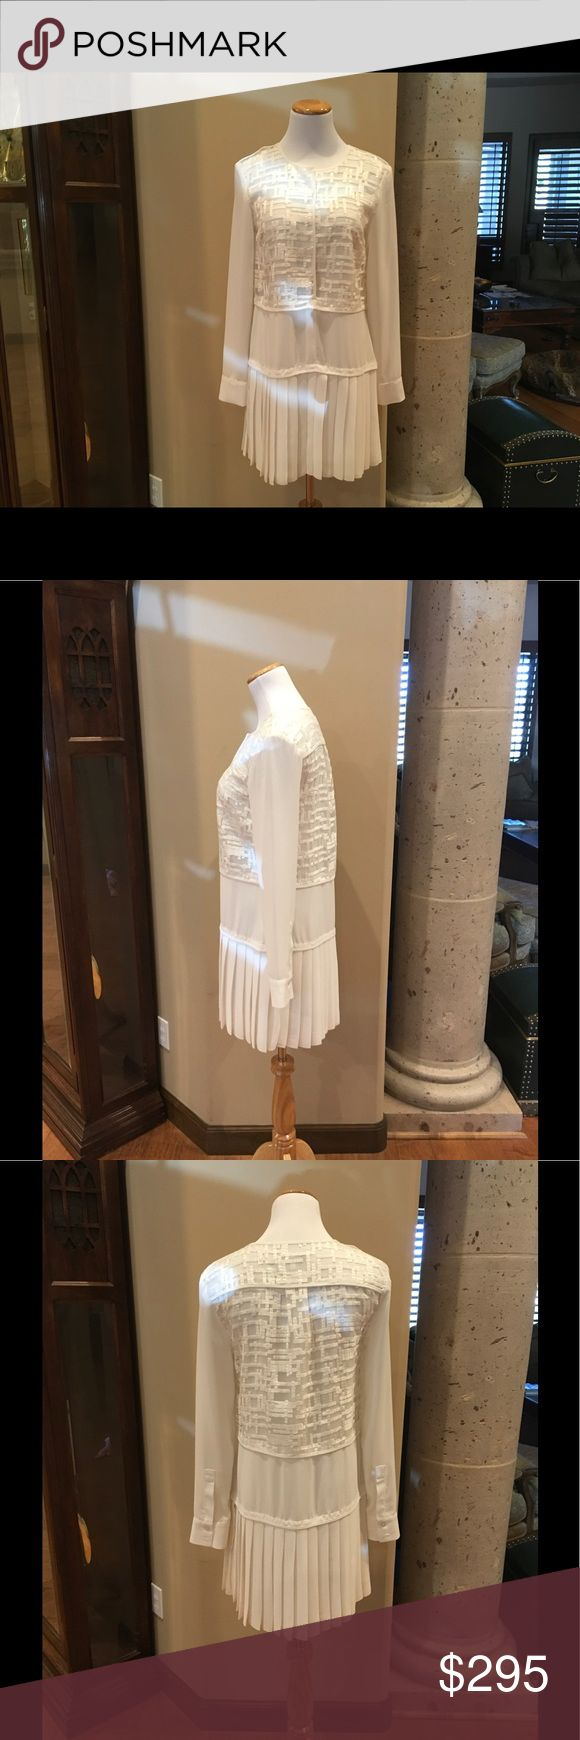 Alexis Long Sleeve dress Long sleeve ivory dress. The bodice is sheer with embroidery, drop waist with pleats and lined throughout. Gorgeous dress. Never been worn. Excellent condition ☺️ Alexis Dresses Mini